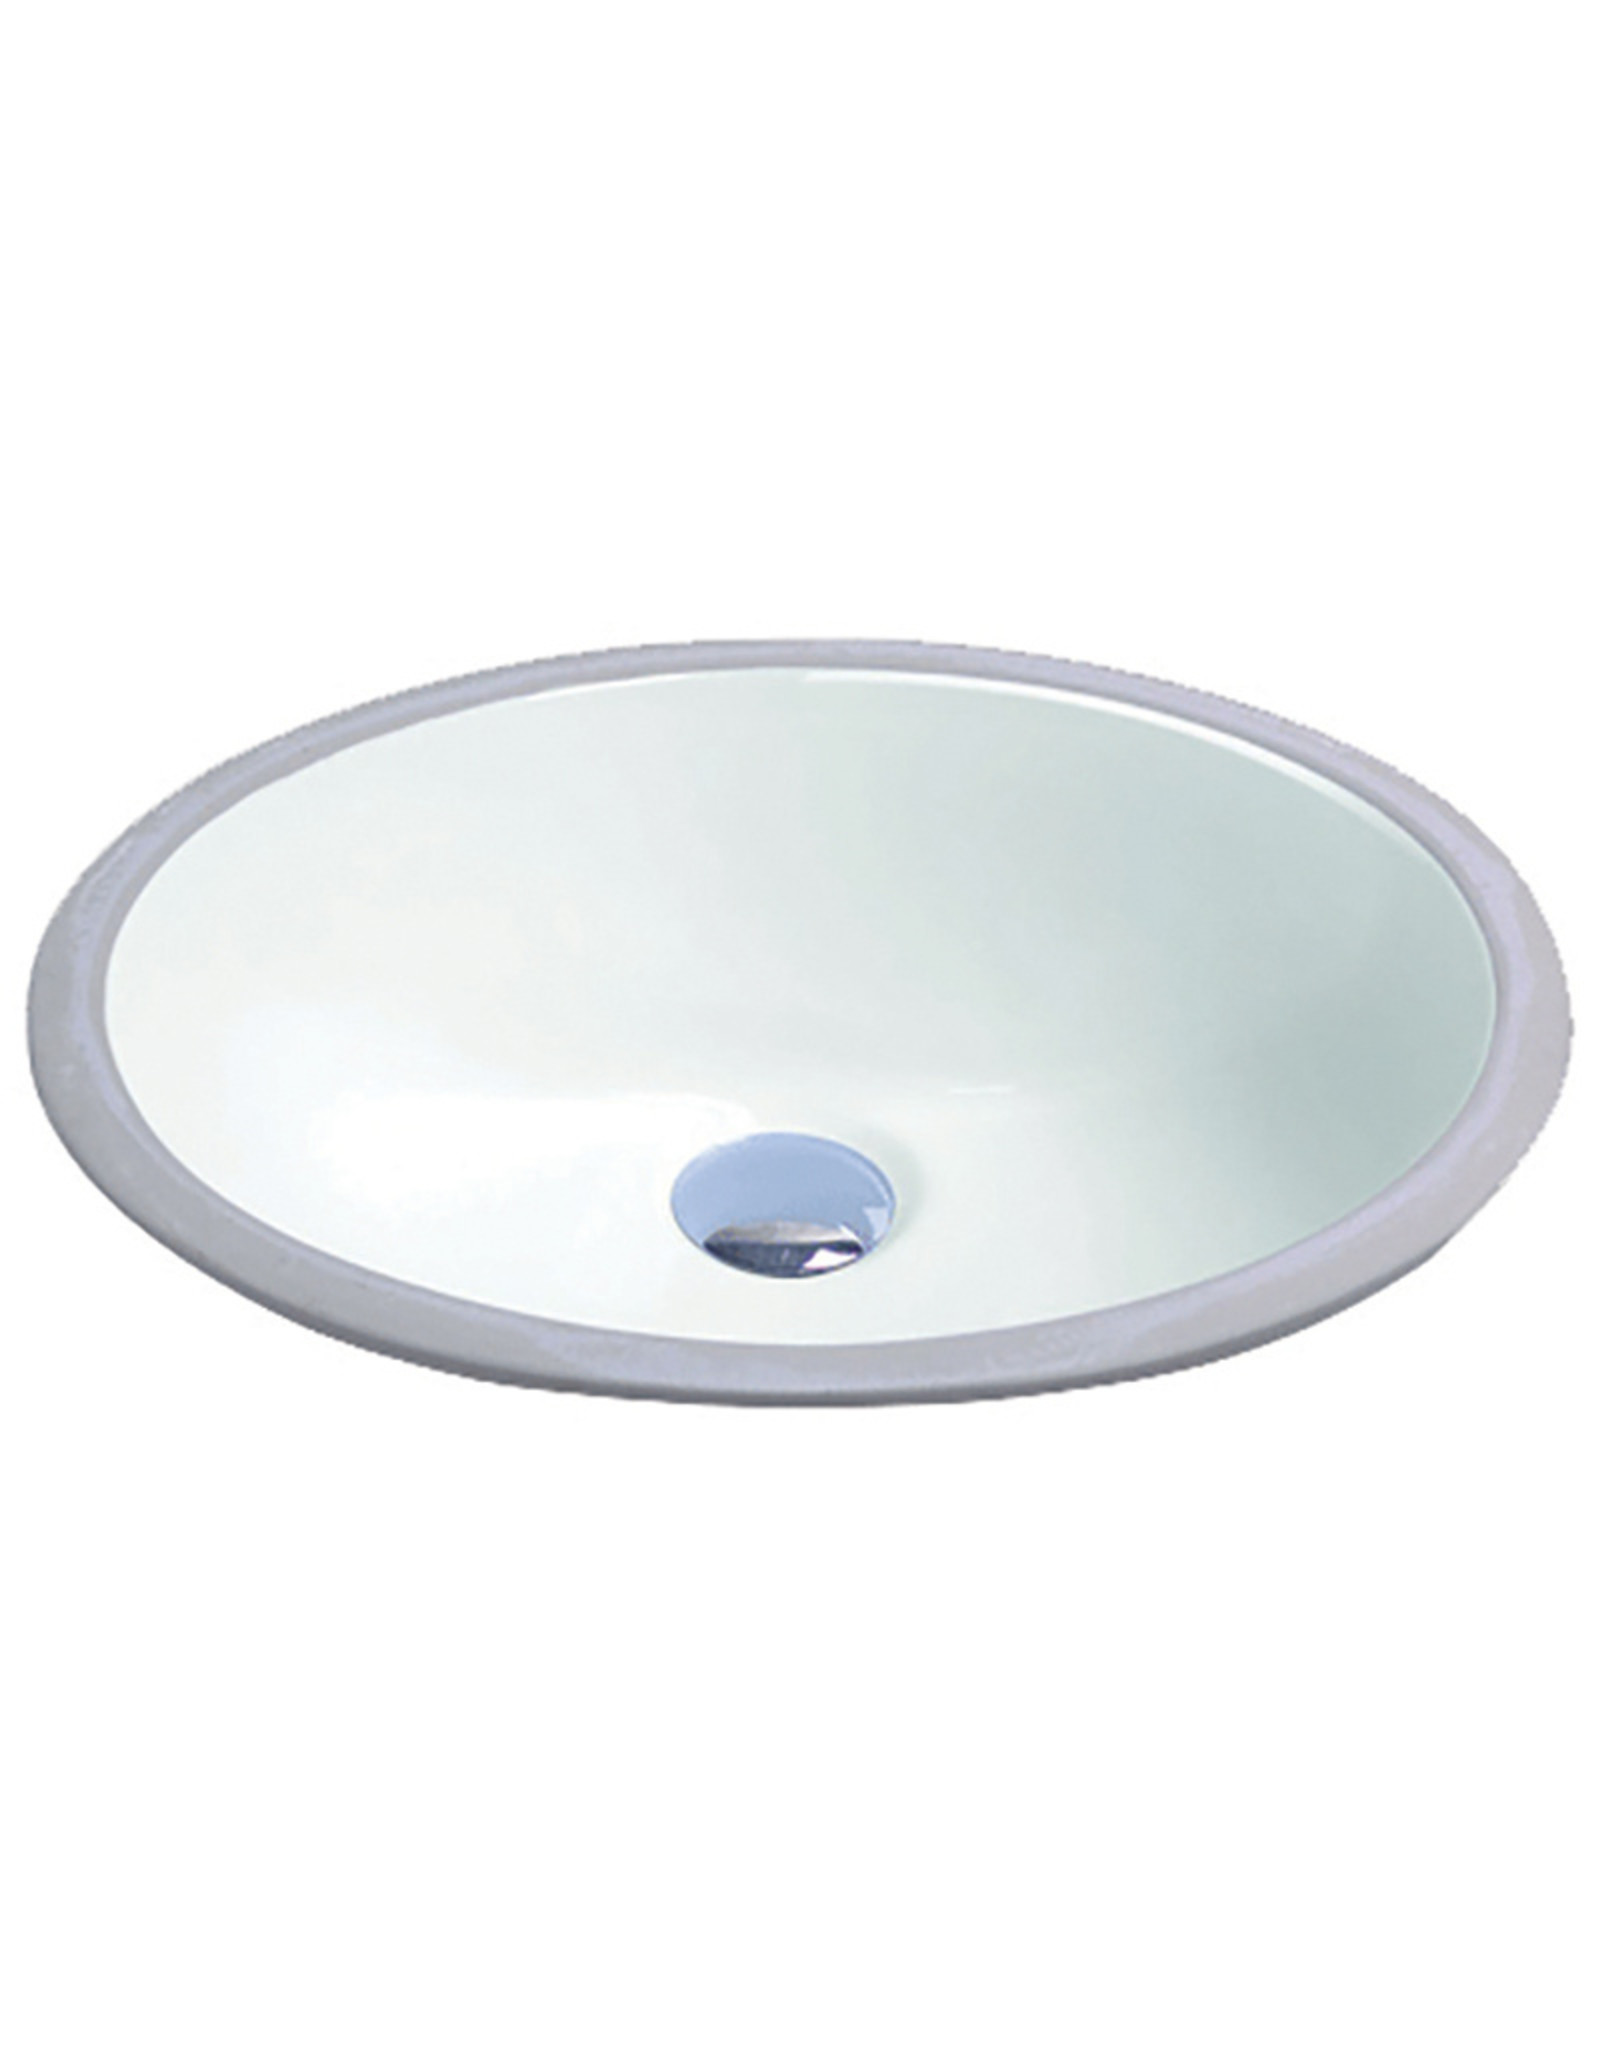 VOGT BRUCK - OVAL VITREOUS CHINA UNDERMOUNT SINK